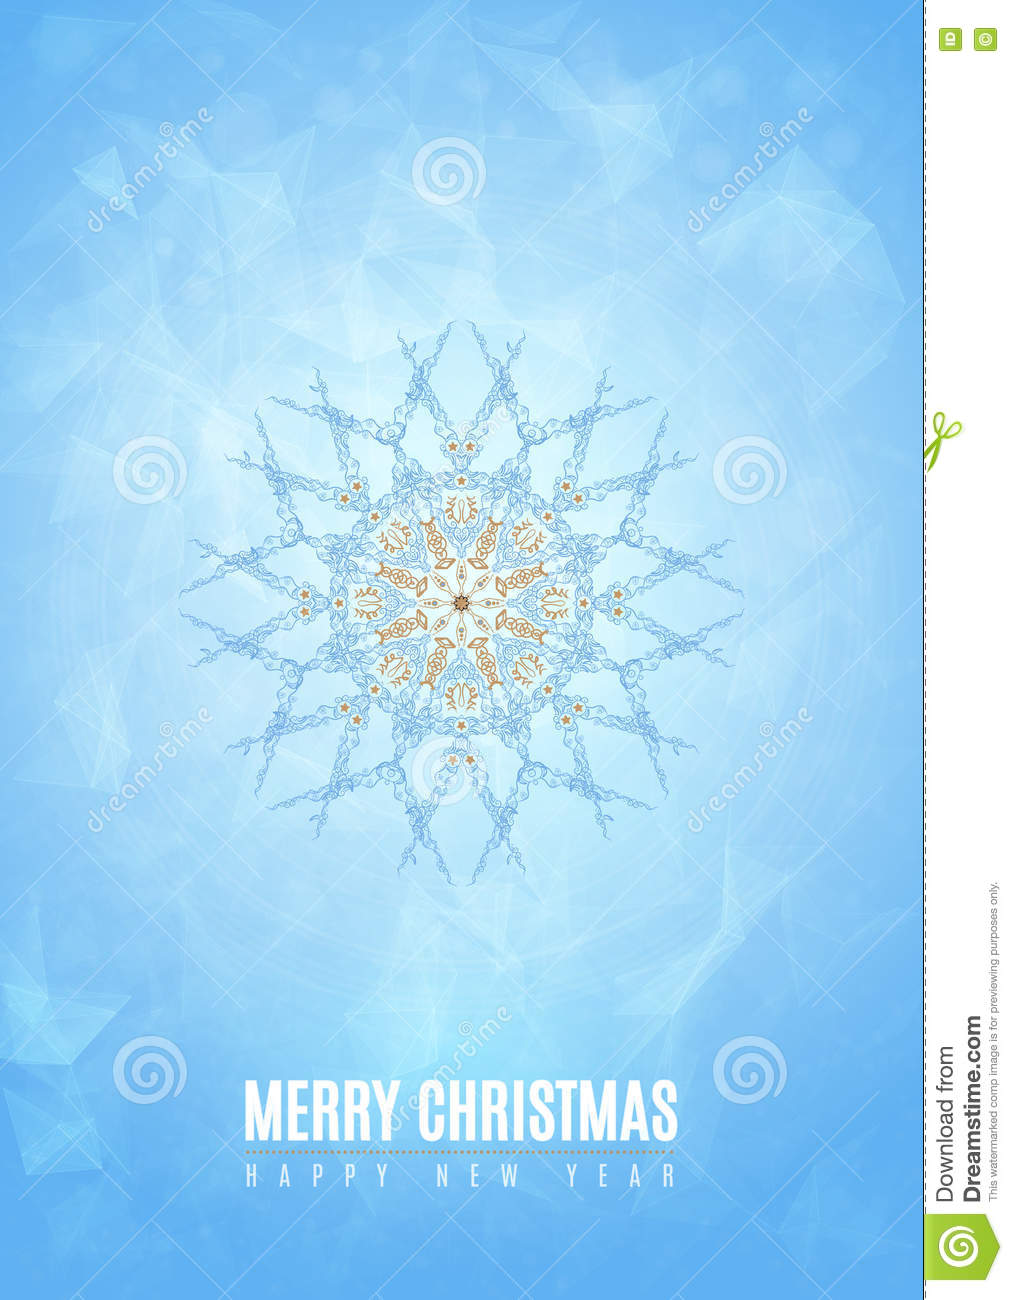 merry christmas happy new year fancy gold and white winter snowflake shape in tribal style ideal for xmas card or elegant holiday party invitation